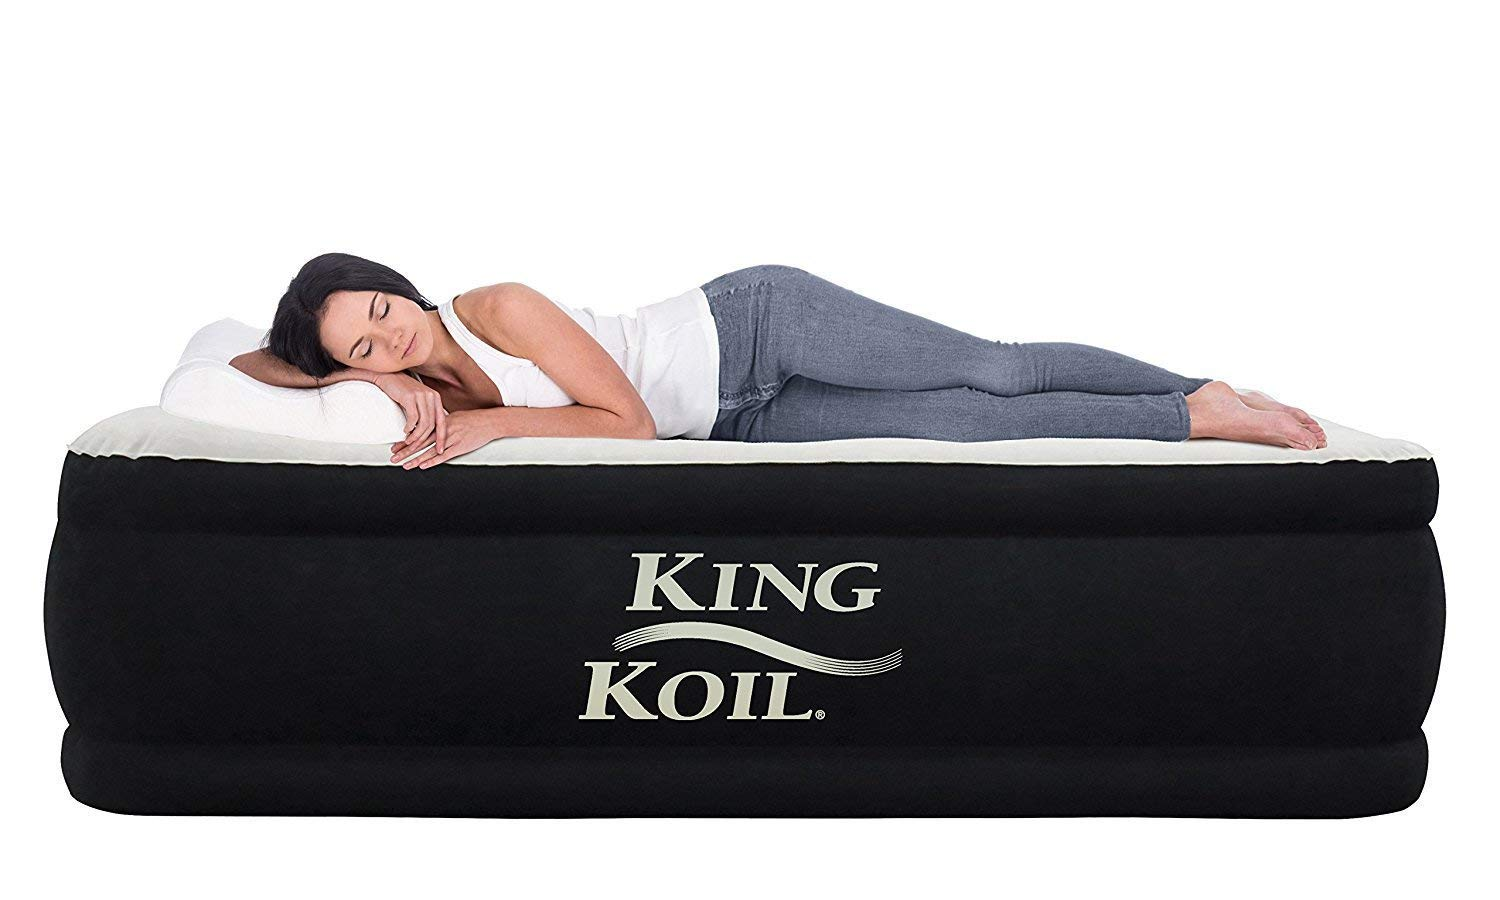 Exclusively with ComfortCoil Technology /& No Hassle 1-Year Warranty SoundAsleep Raised Twin Size Premium Air Mattress Best Inflatable Airbed with Plush Top and Internal High Capacity Pump